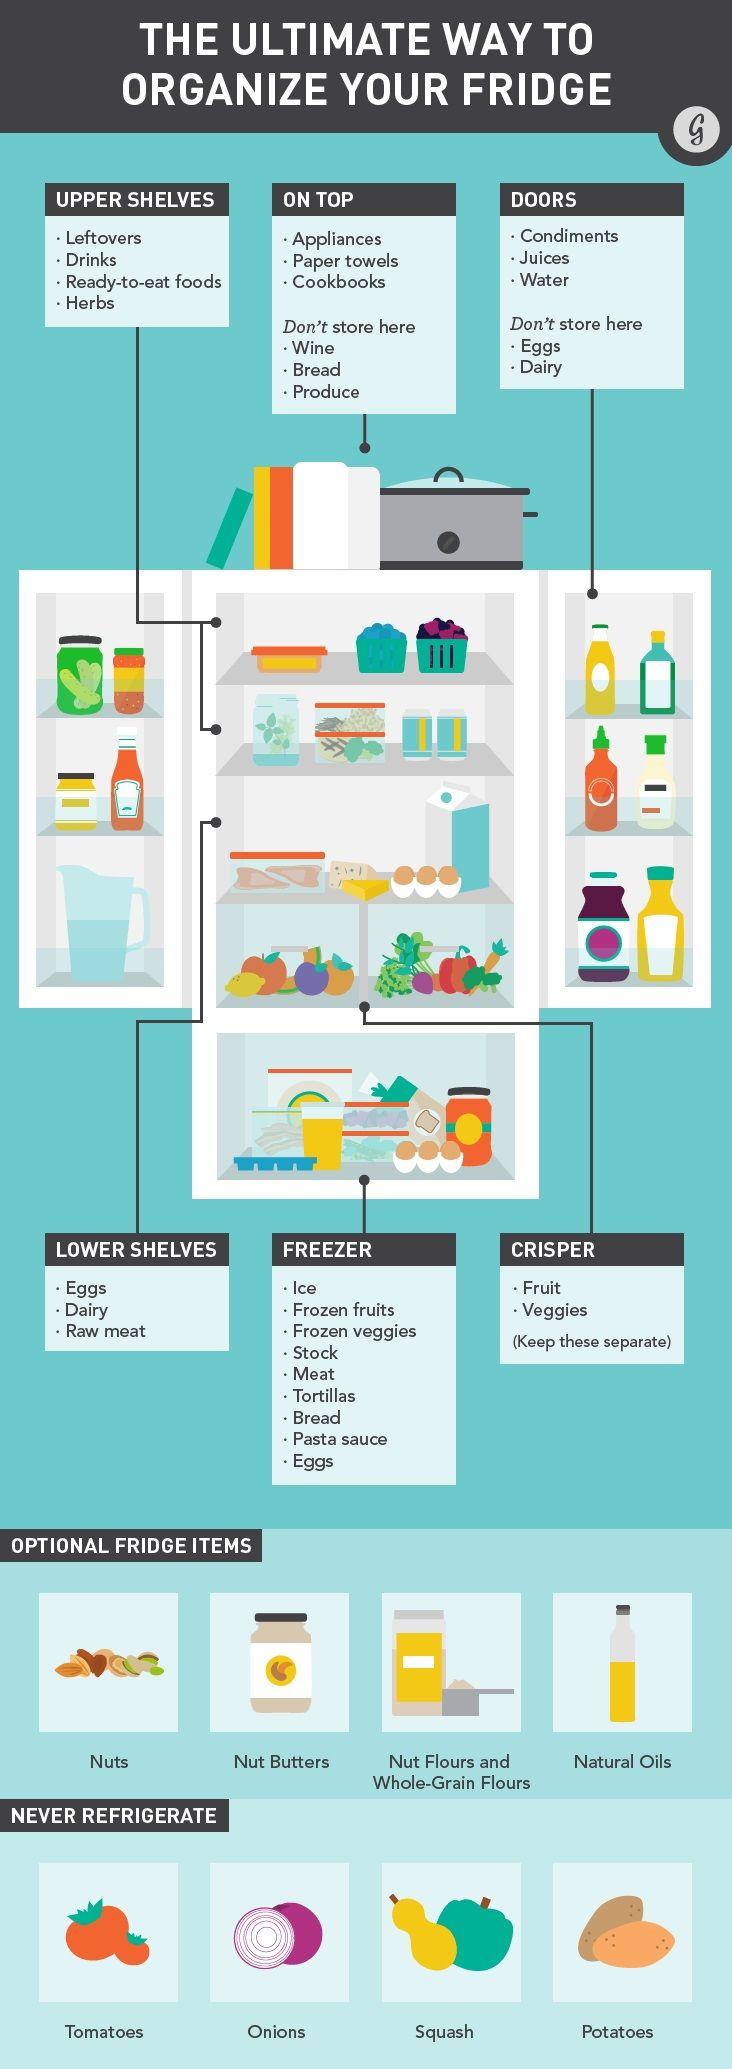 Secrets for Long-Lasting Refrigerator Organization | thegoodstuff